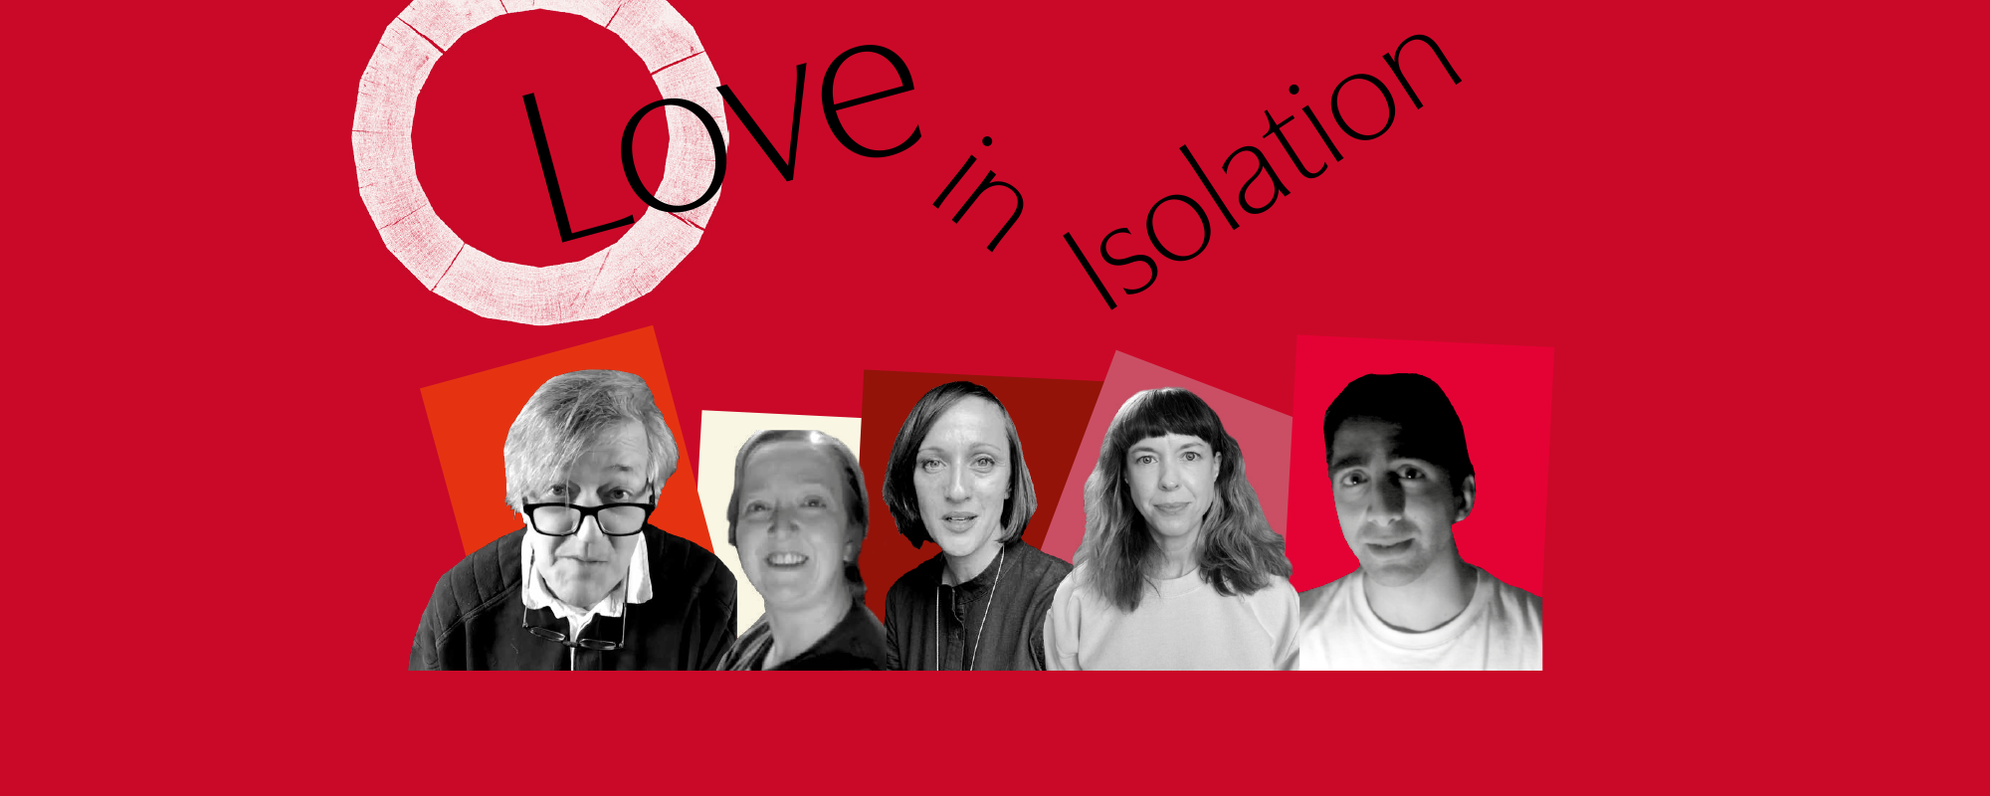 The words love in isolation float above images of 5 people participating in the project